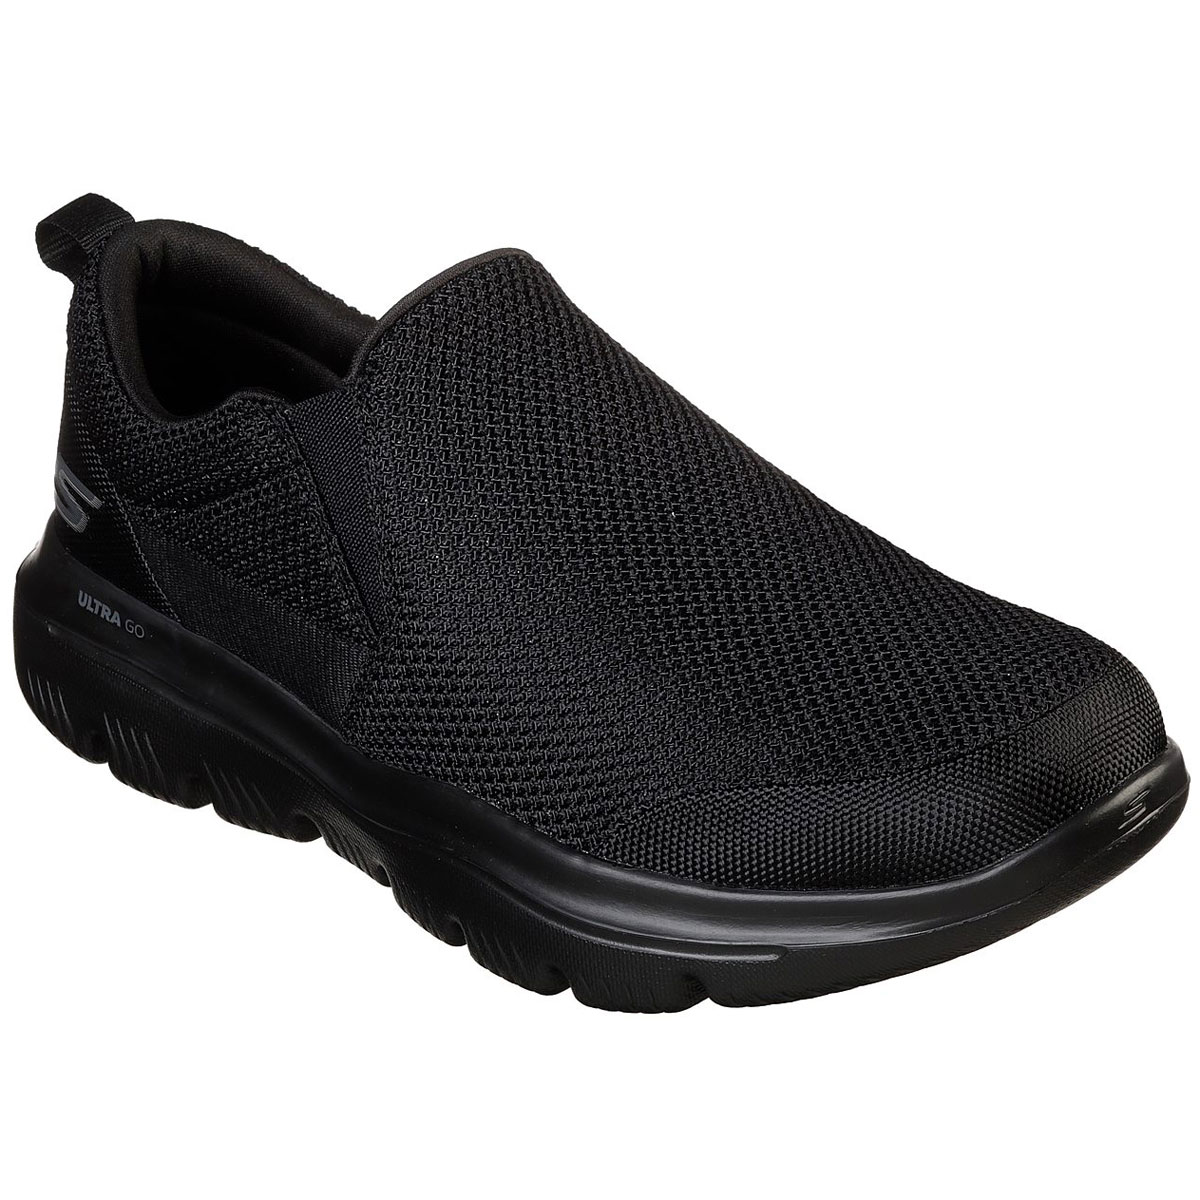 Skechers Men's Gowalk Evolution Ultra Impeccable Slip-On Walking Sneakers - Black, 12